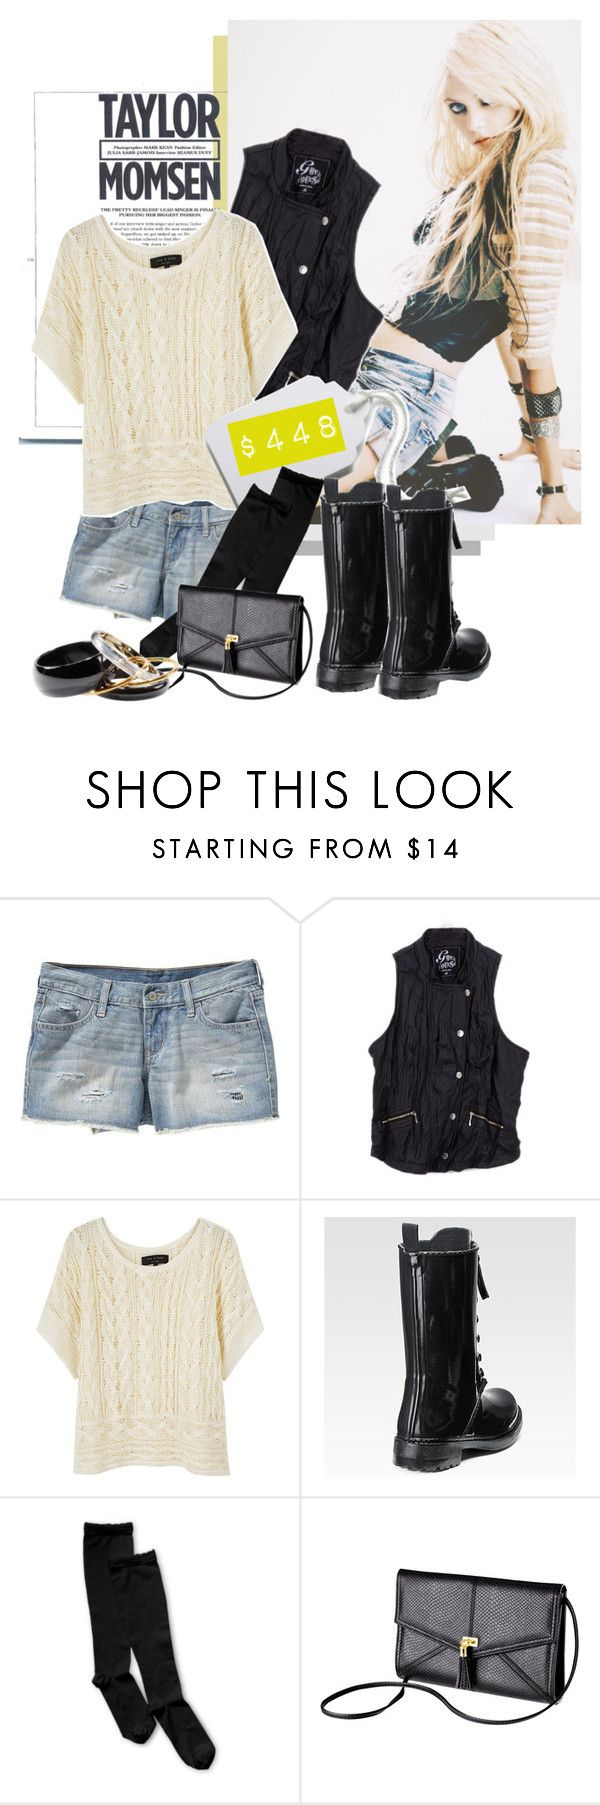 """GET Taylor Momsen look."" by fumikokawa ❤ liked on Polyvore featuring Old Navy, G by Guess, rag & bone, Tag, KORS Michael Kors, Nordstrom, H&M, levitation, photography and taylor momsen"